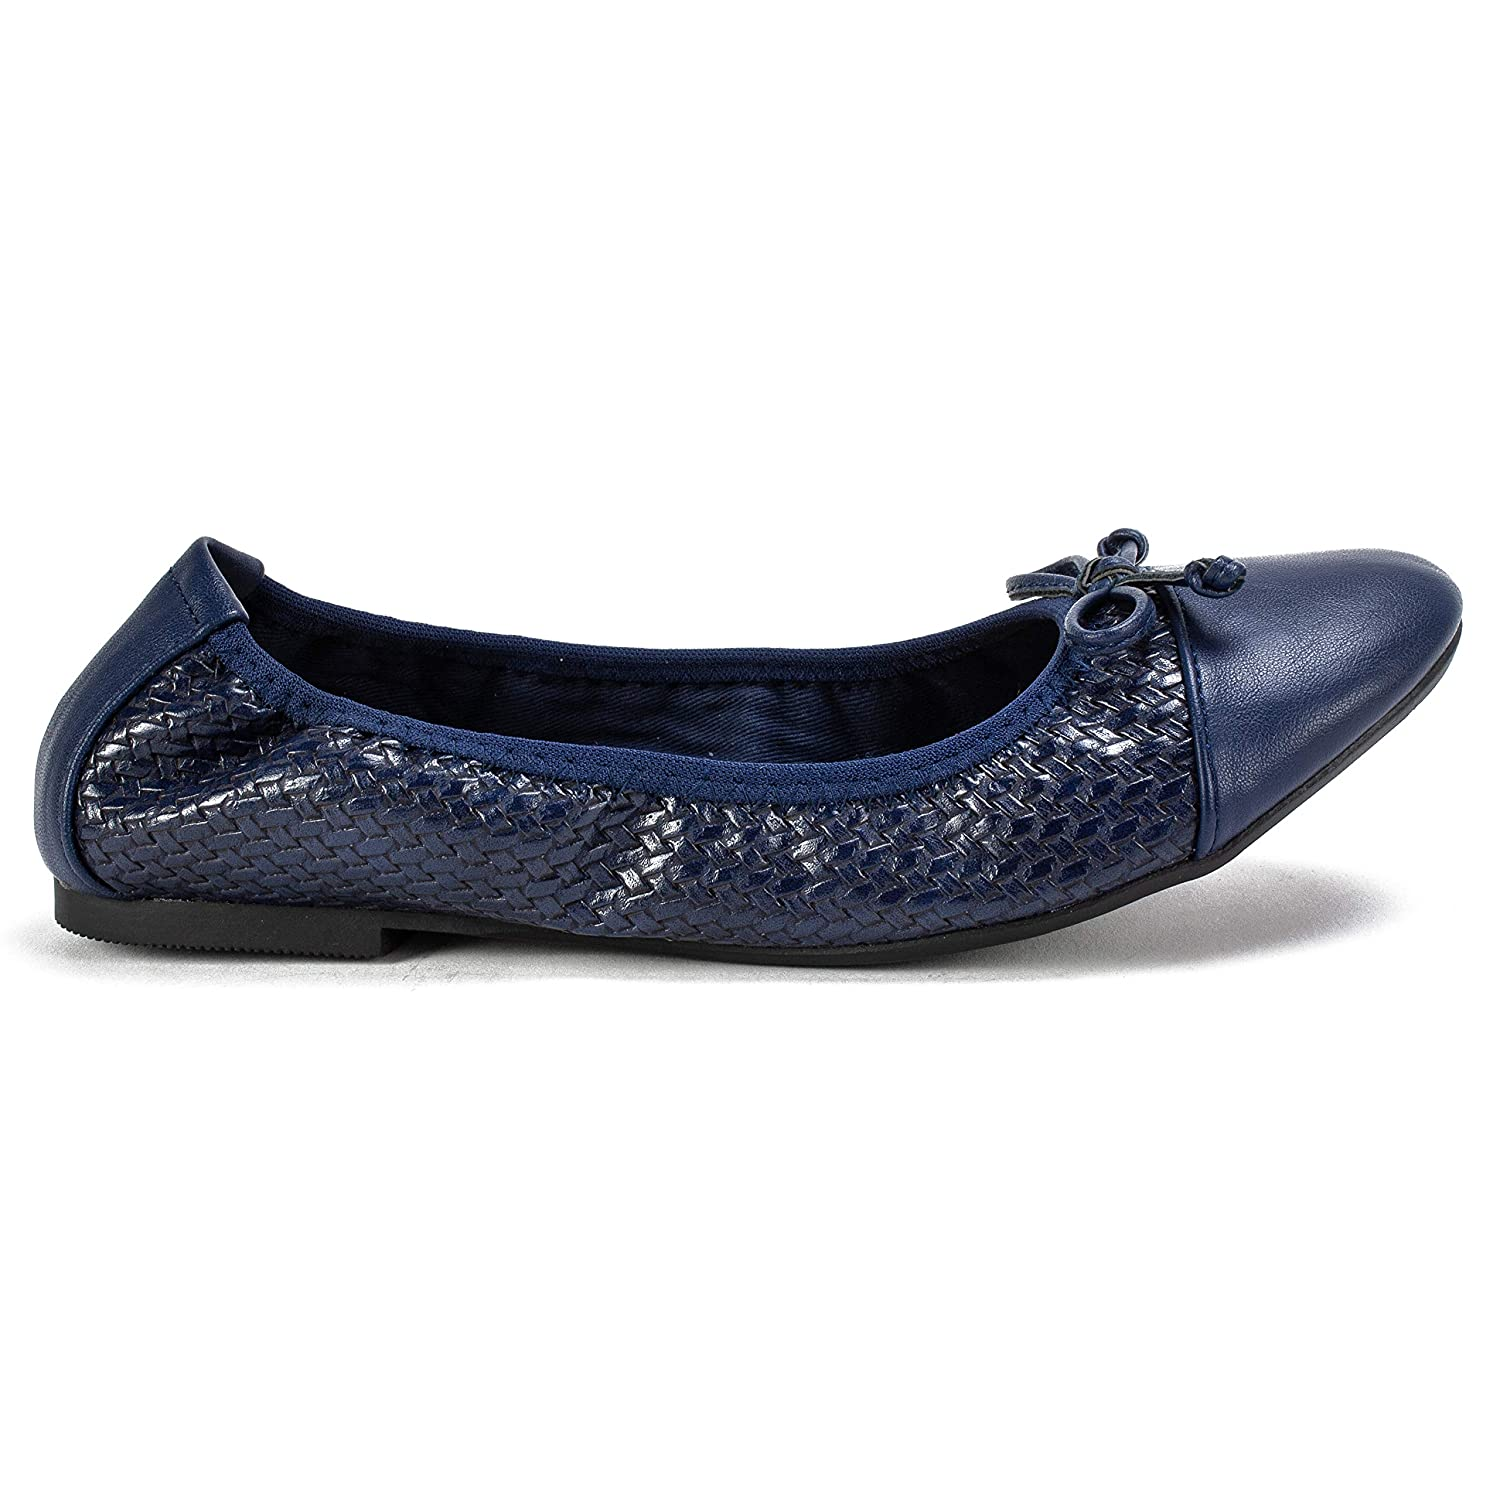 Navy//Woven//Smooth 9H M RIALTO Shoes Sunnyside II Womens Flat